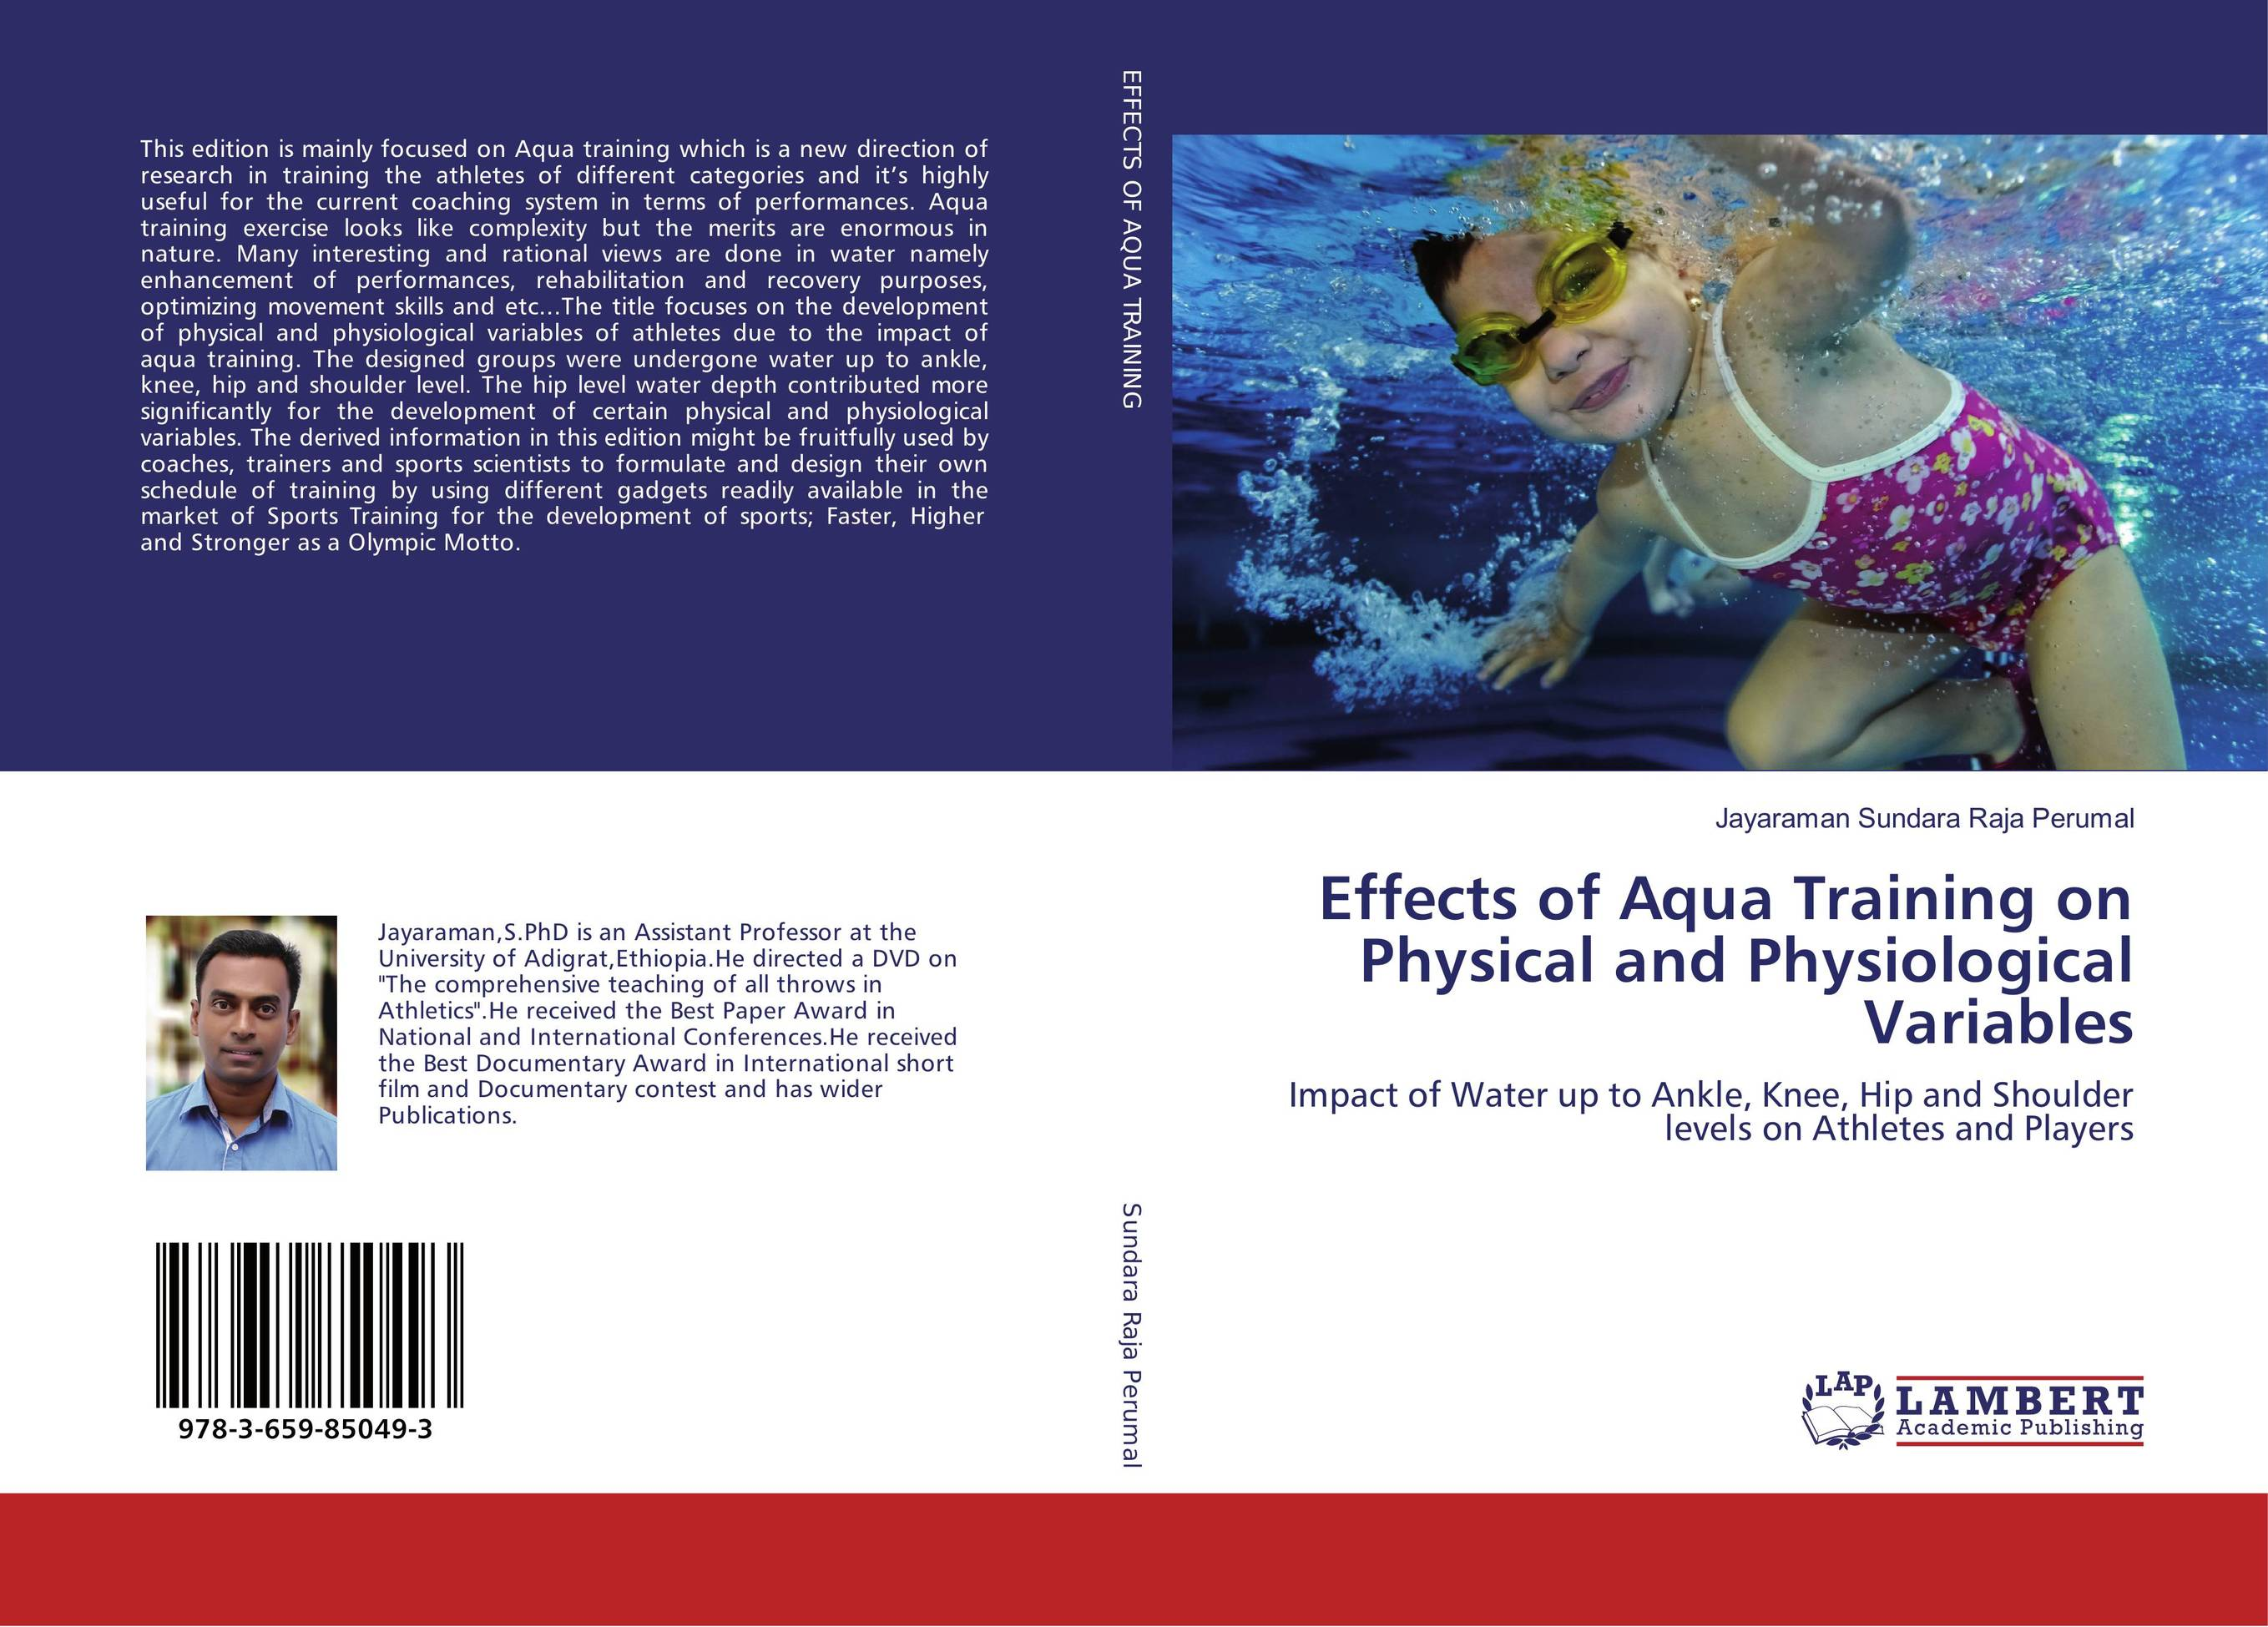 Effects of Aqua Training on Physical and Physiological Variables elaine biech training and development for dummies